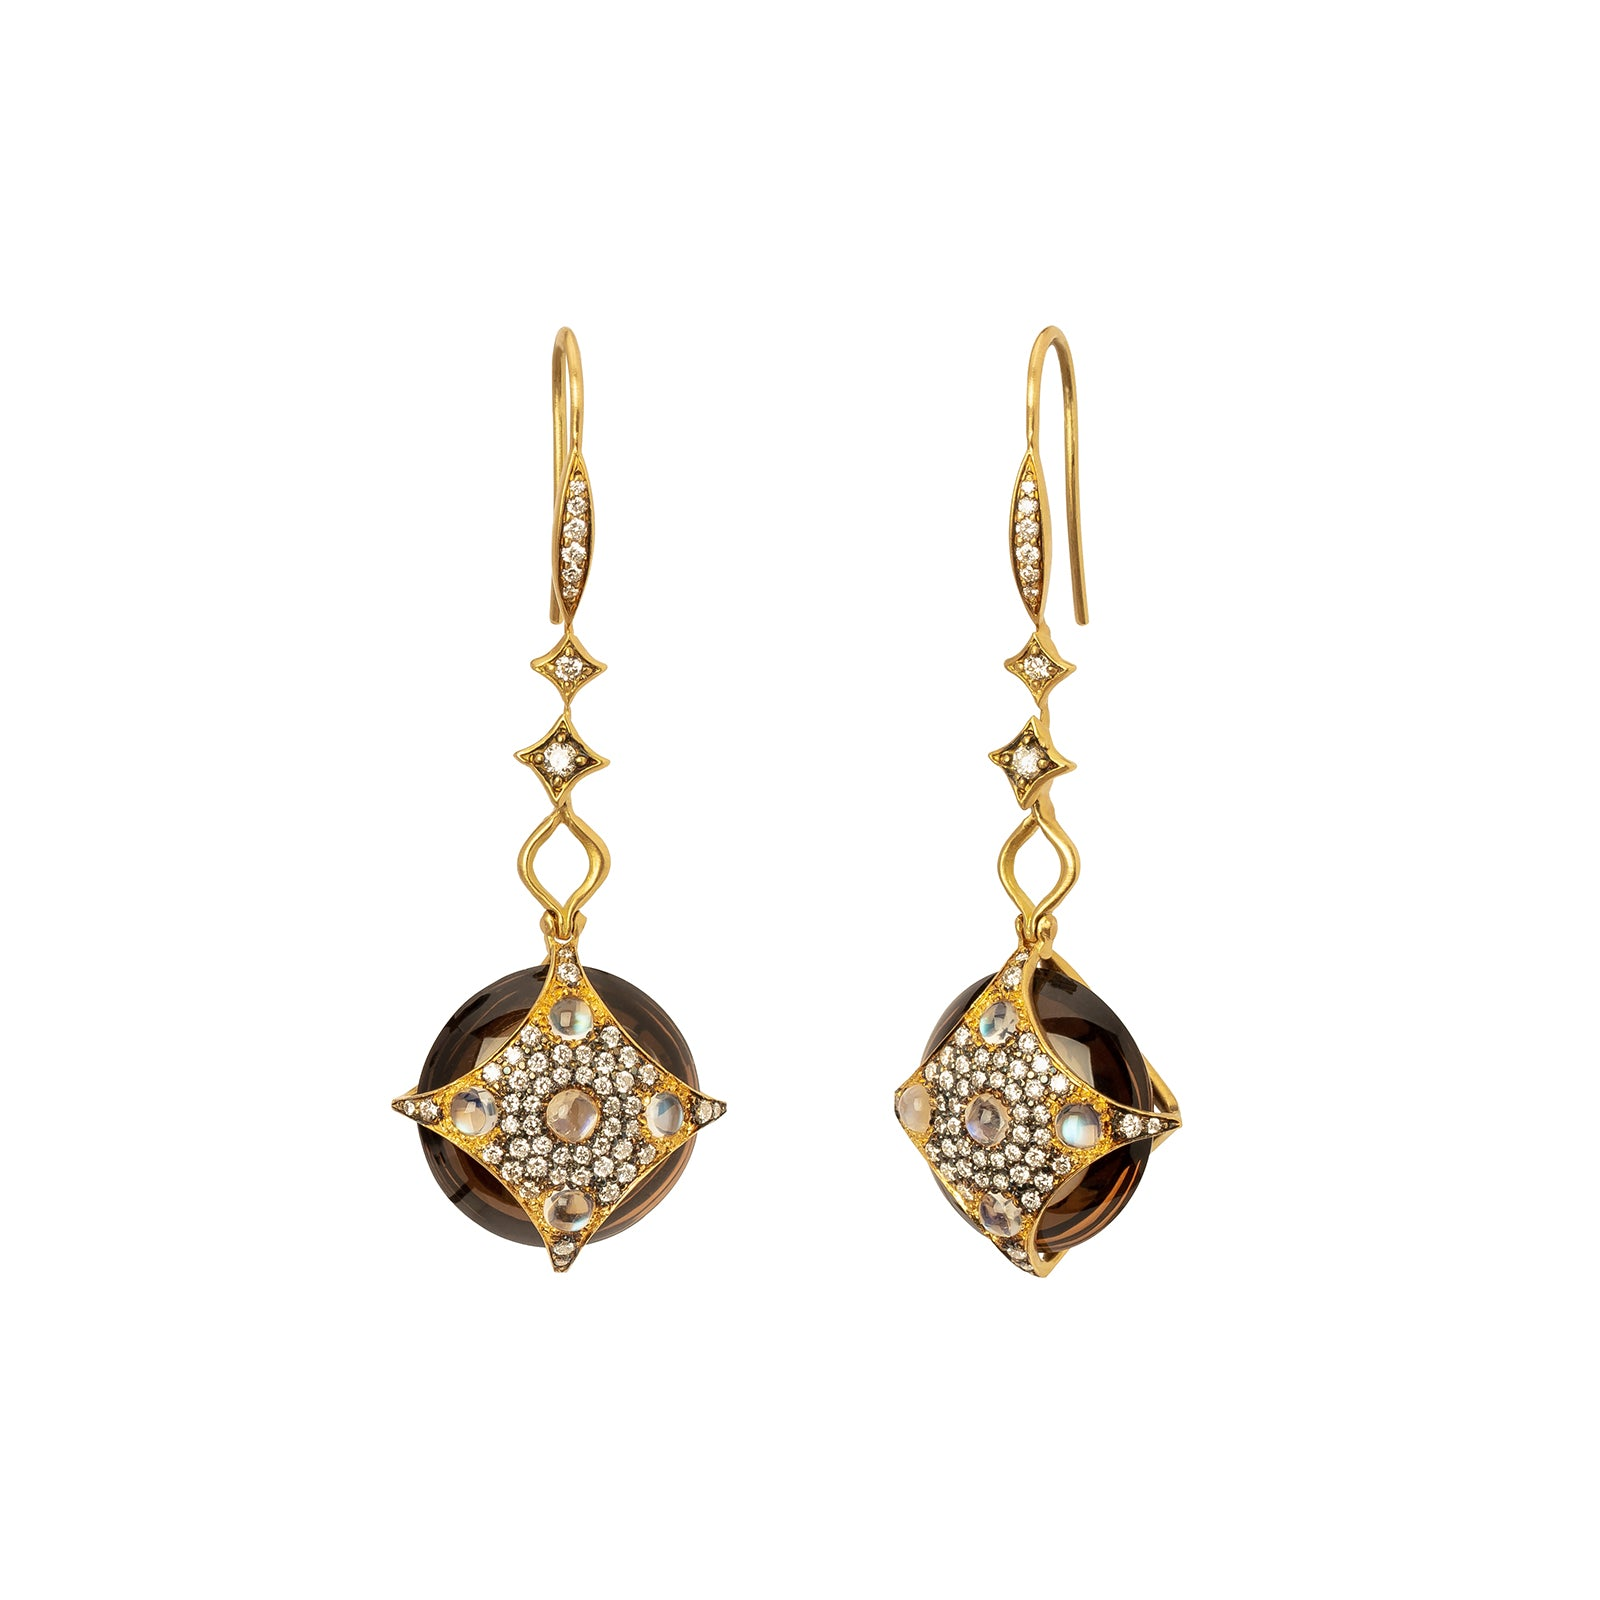 Anahita Medallion Smokey Quartz Earrings - Earrings - Broken English Jewelry